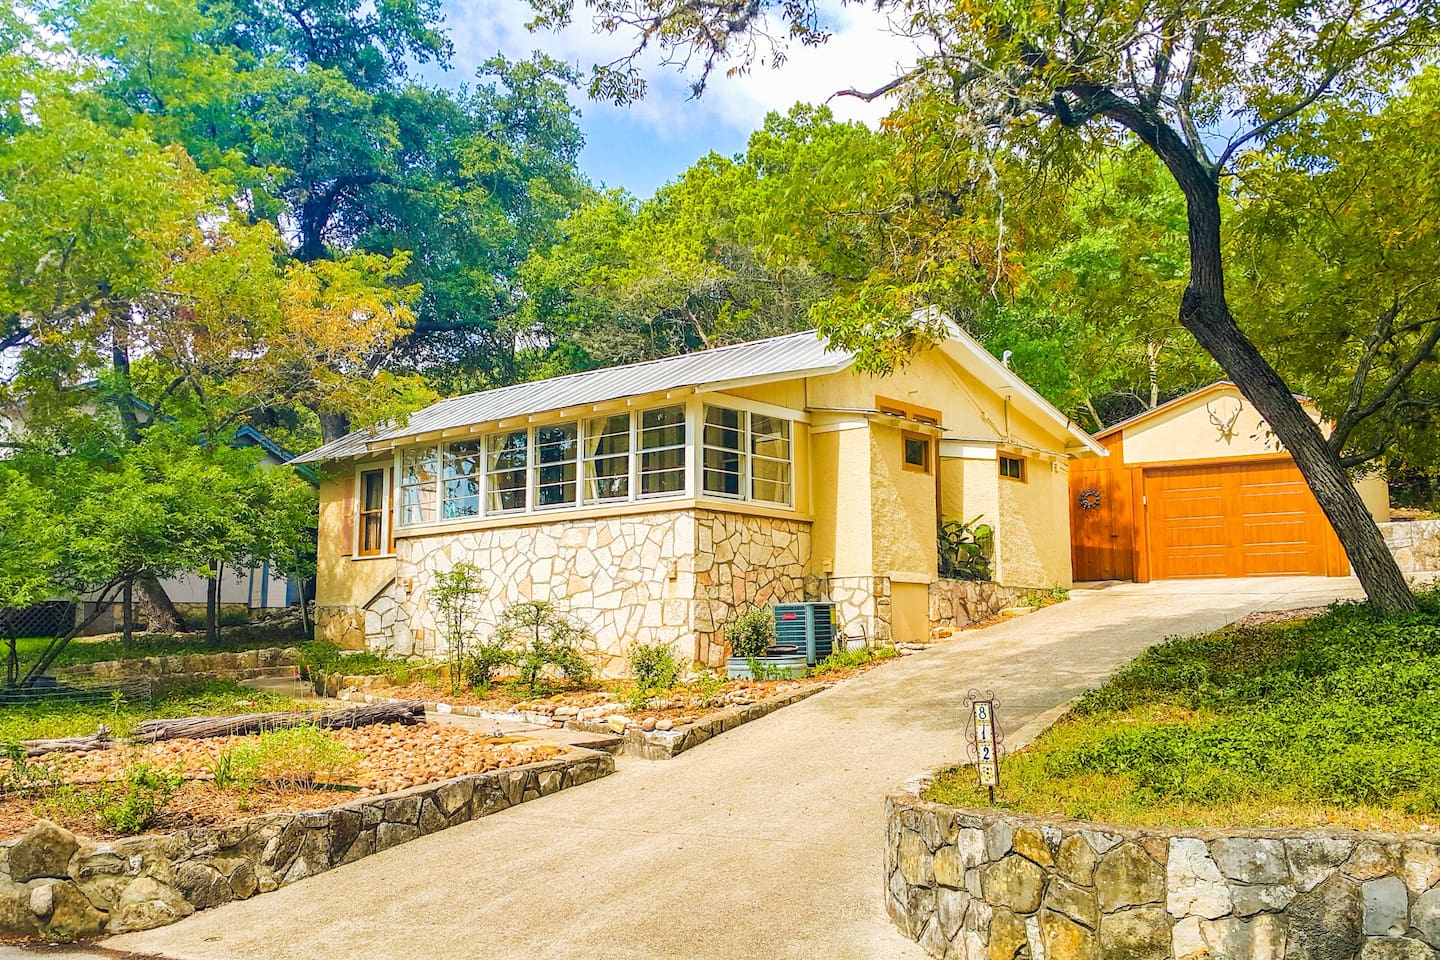 Tanglewood Cottage sits in tranquility on a gentle hillside in one of Kerrville's most unique and eclectic antique neighborhoods.